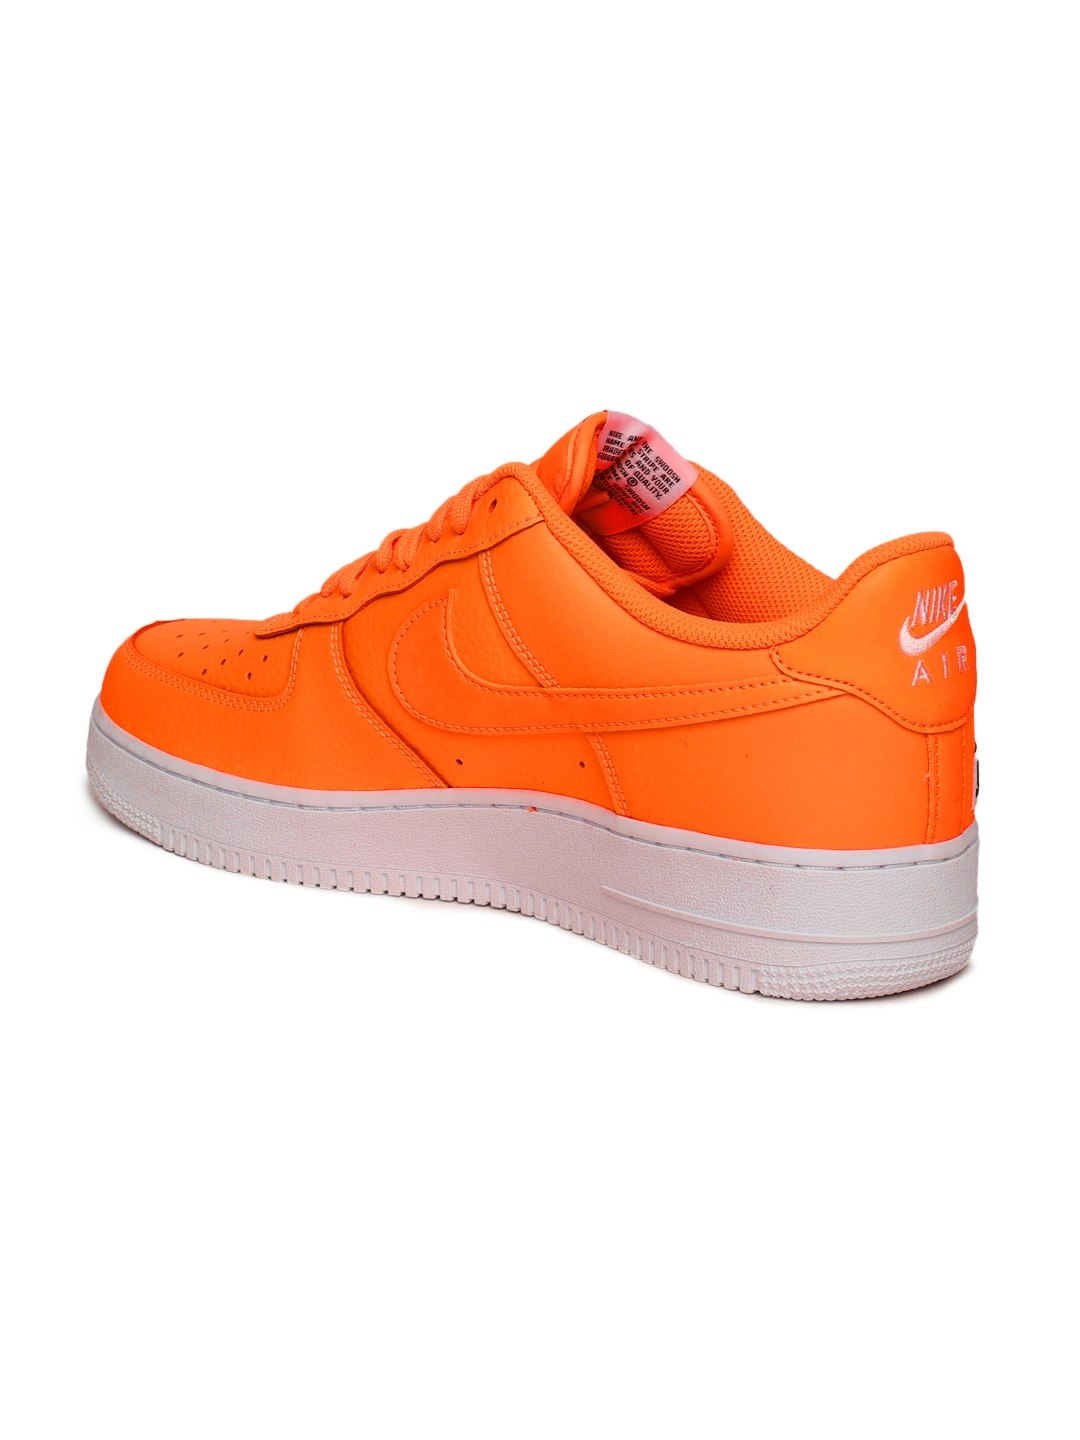 new product 9eb4f 82390 Nike Men Orange Air Force 1  07 LV8 JDI Leather Sneakers